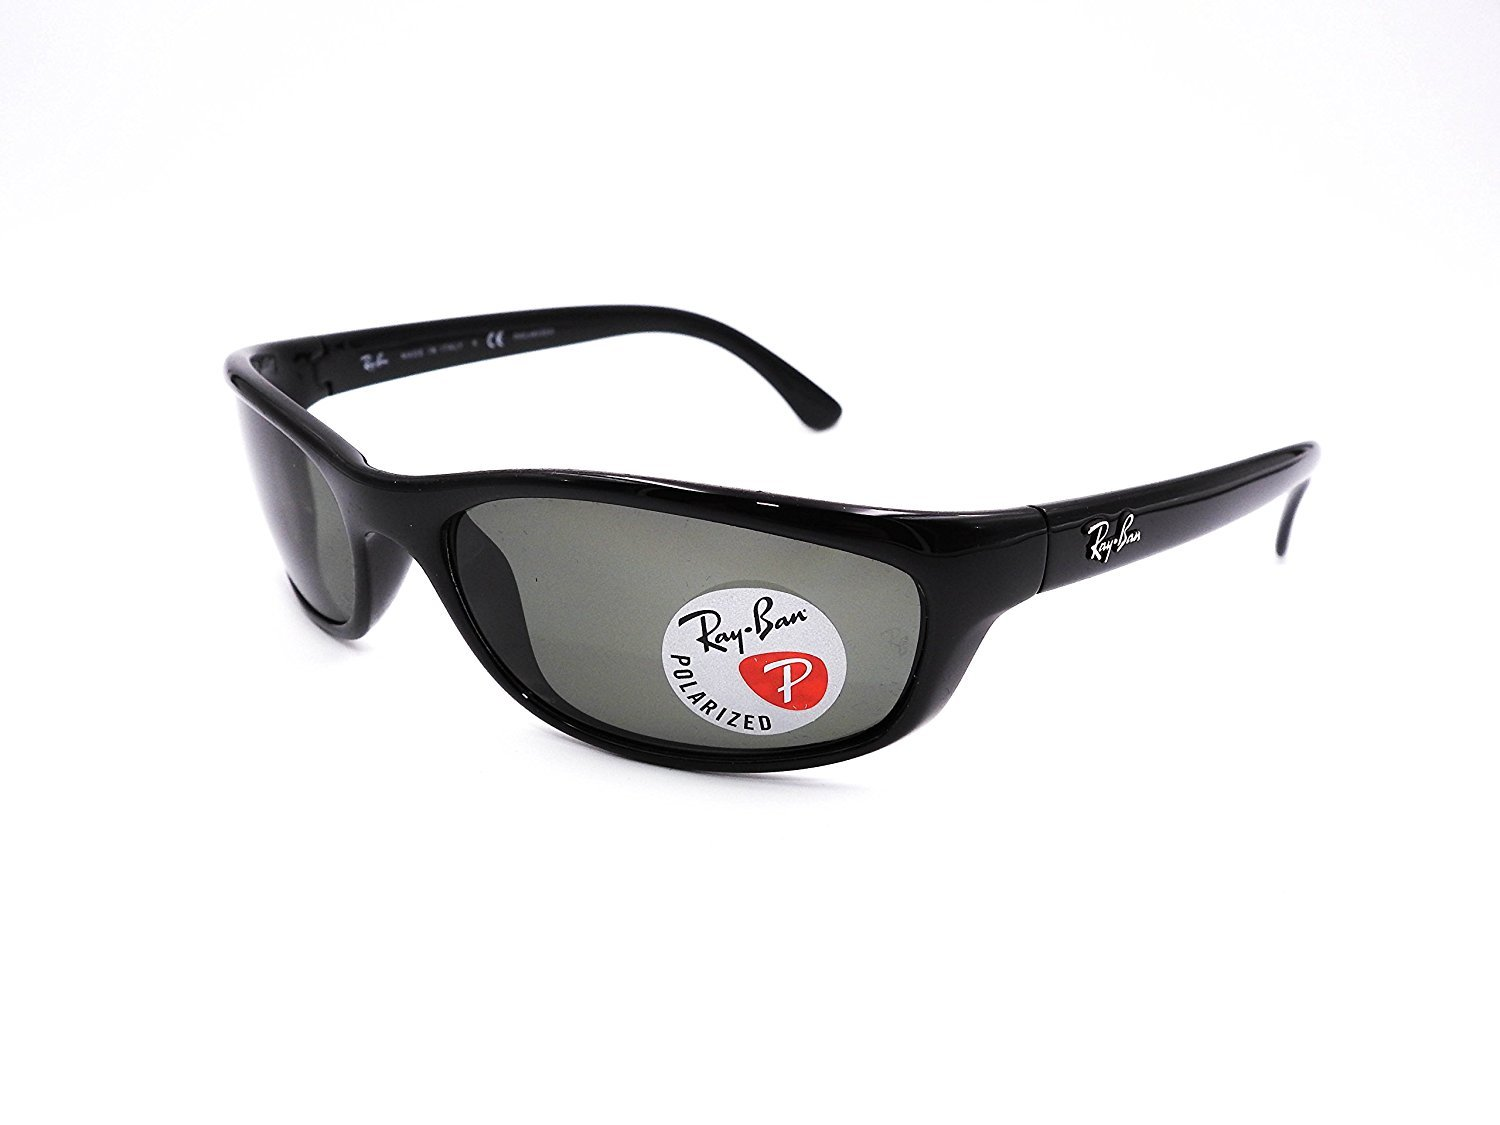 6f3f894fe14 Ray-Ban fast   furious sunglasses RB 4115 and similar items